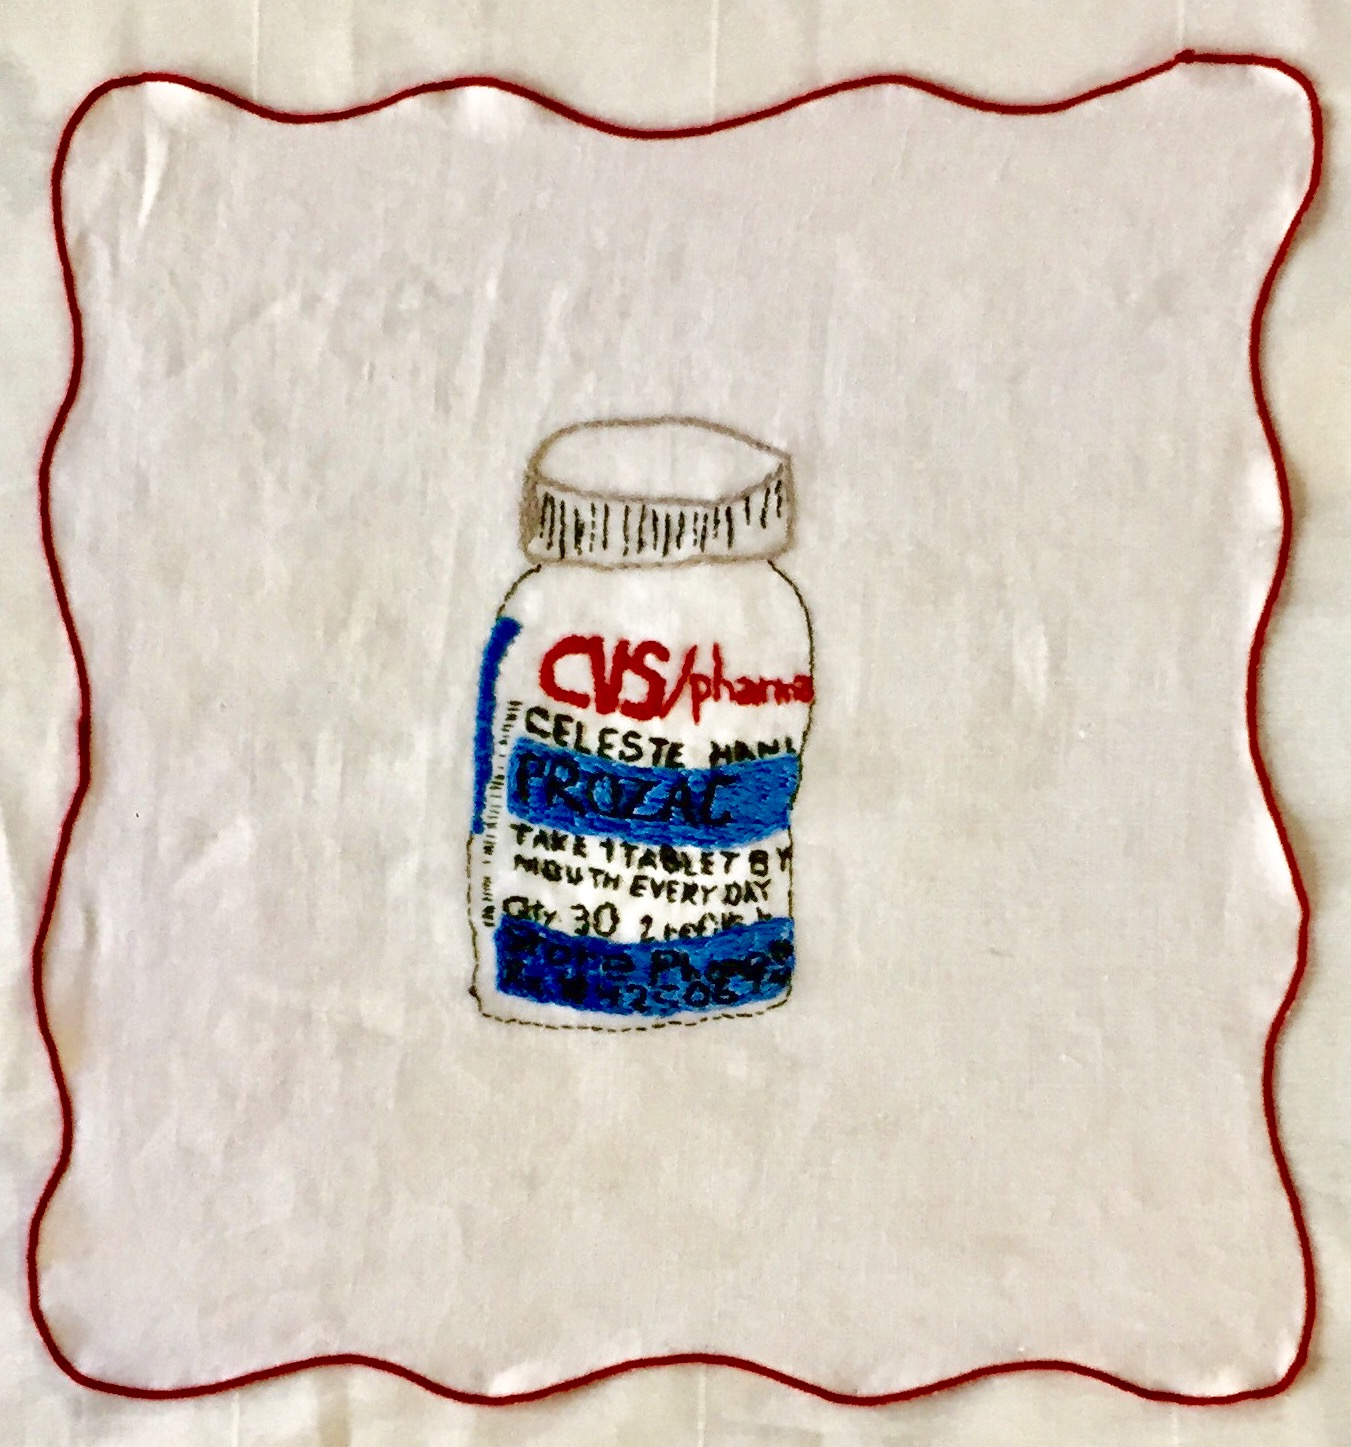 PHARMA SERIES: PROZAC-embroidery on a vintage linen napkin-2017, SOLD